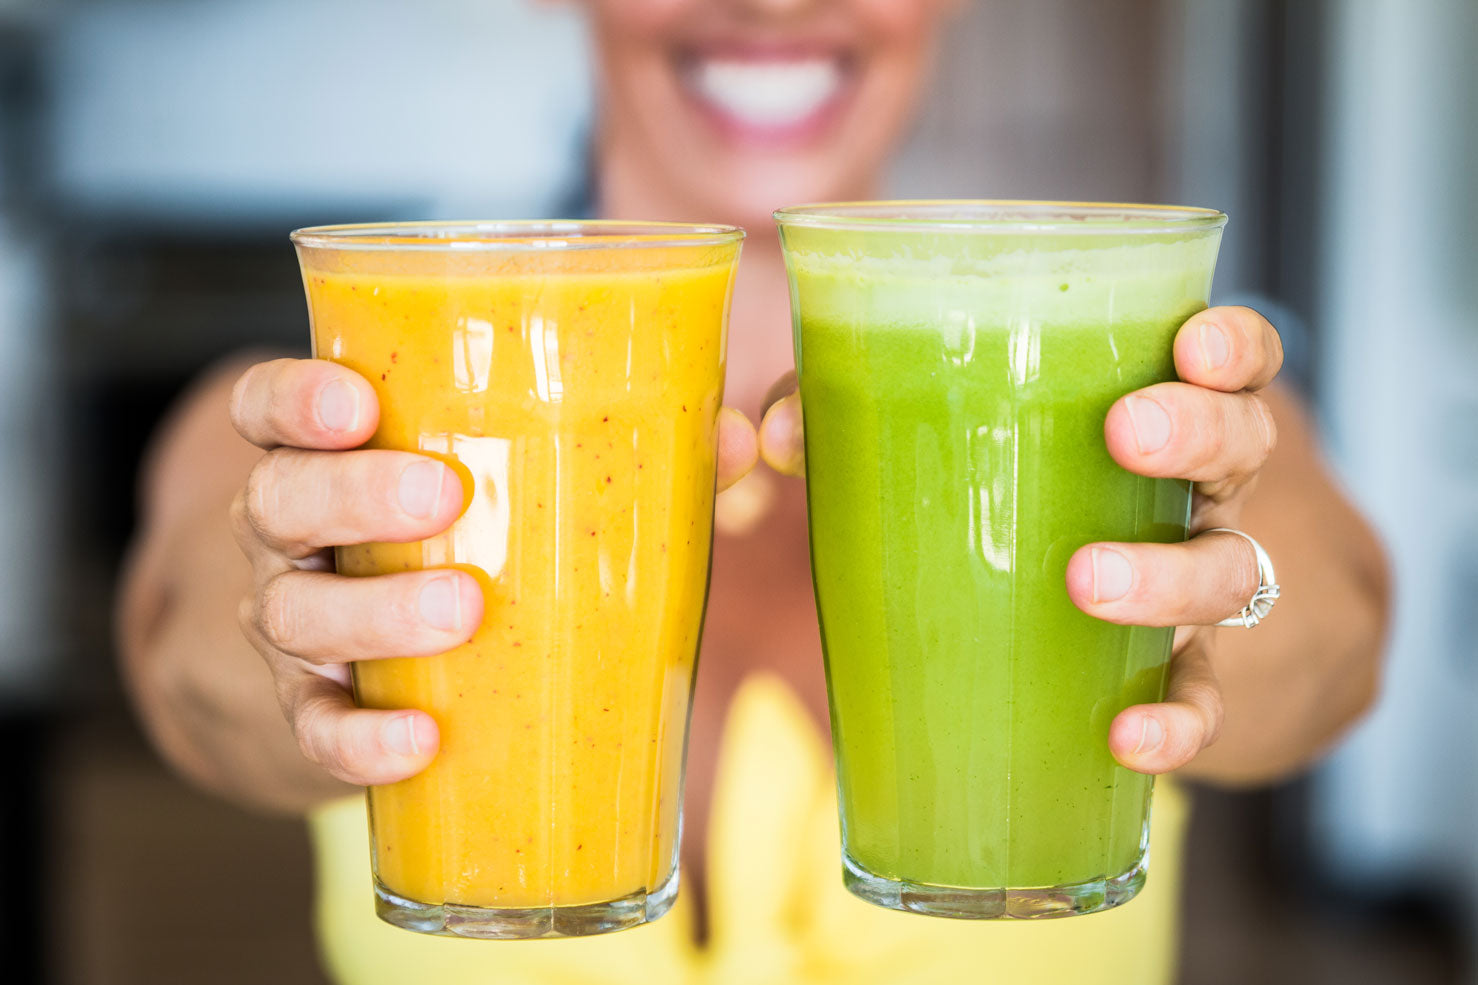 Smoothies Vs. Juicing